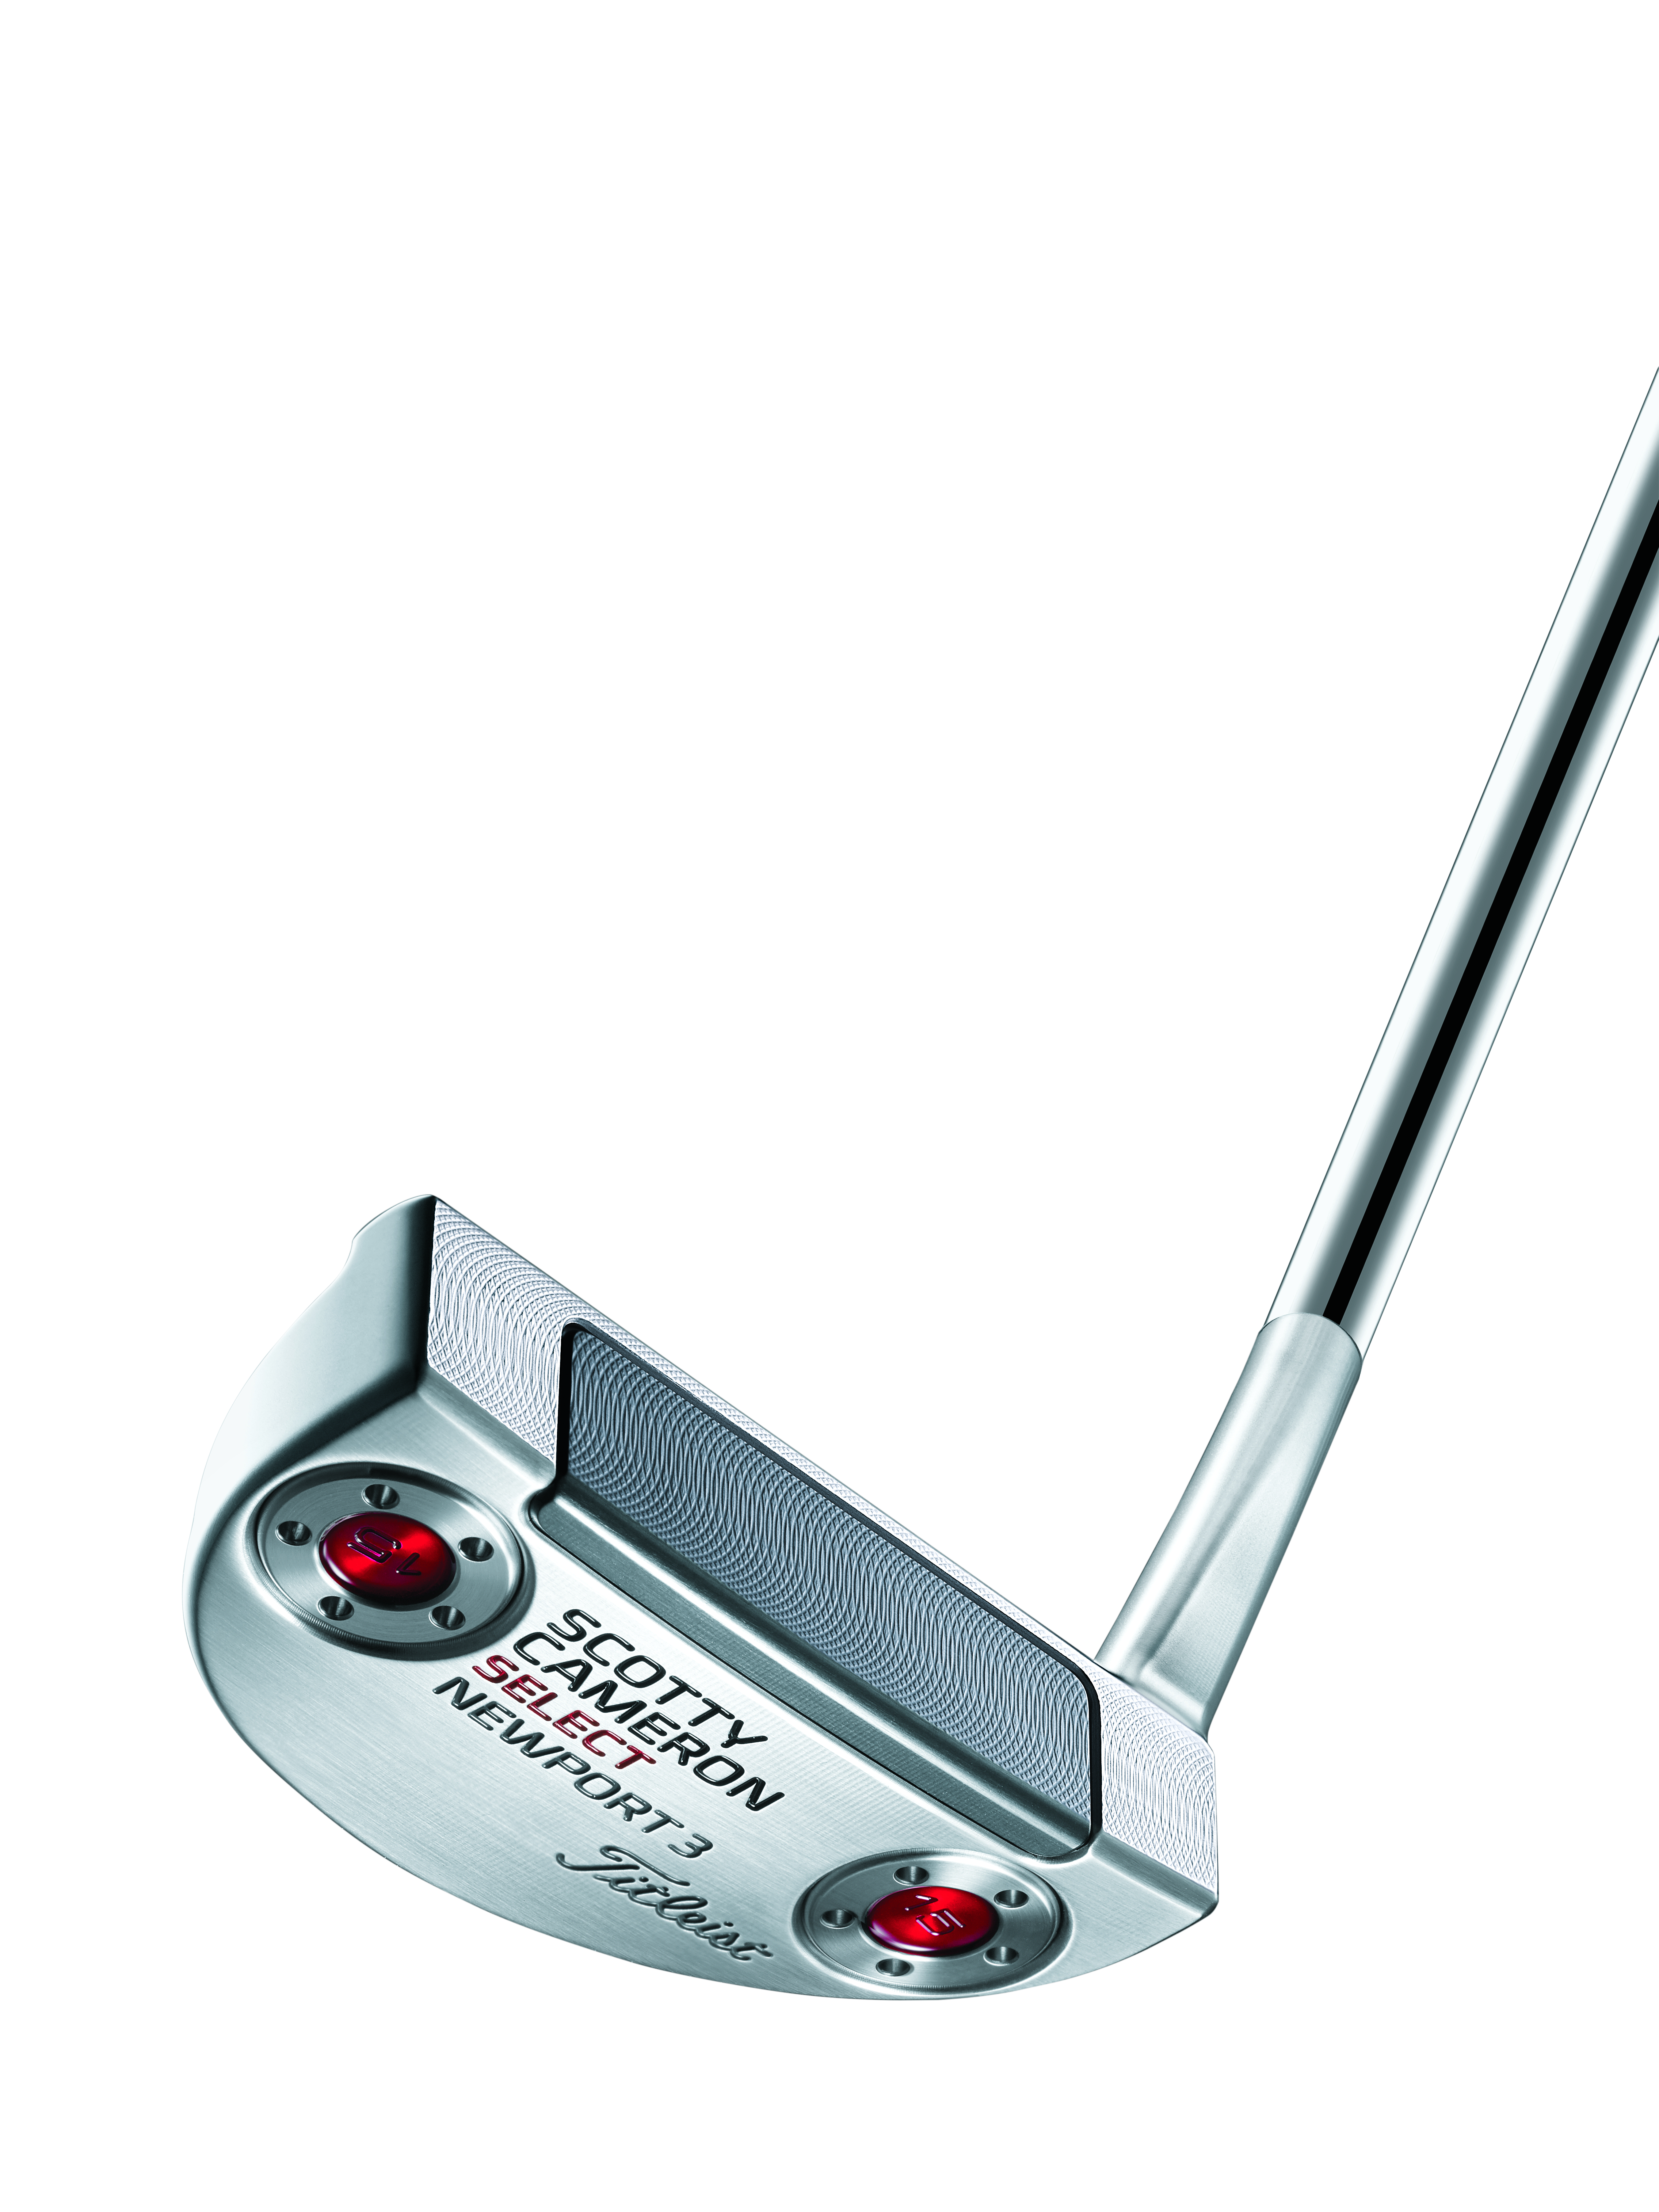 The new Scotty Cameron Select Newport 3 putter.